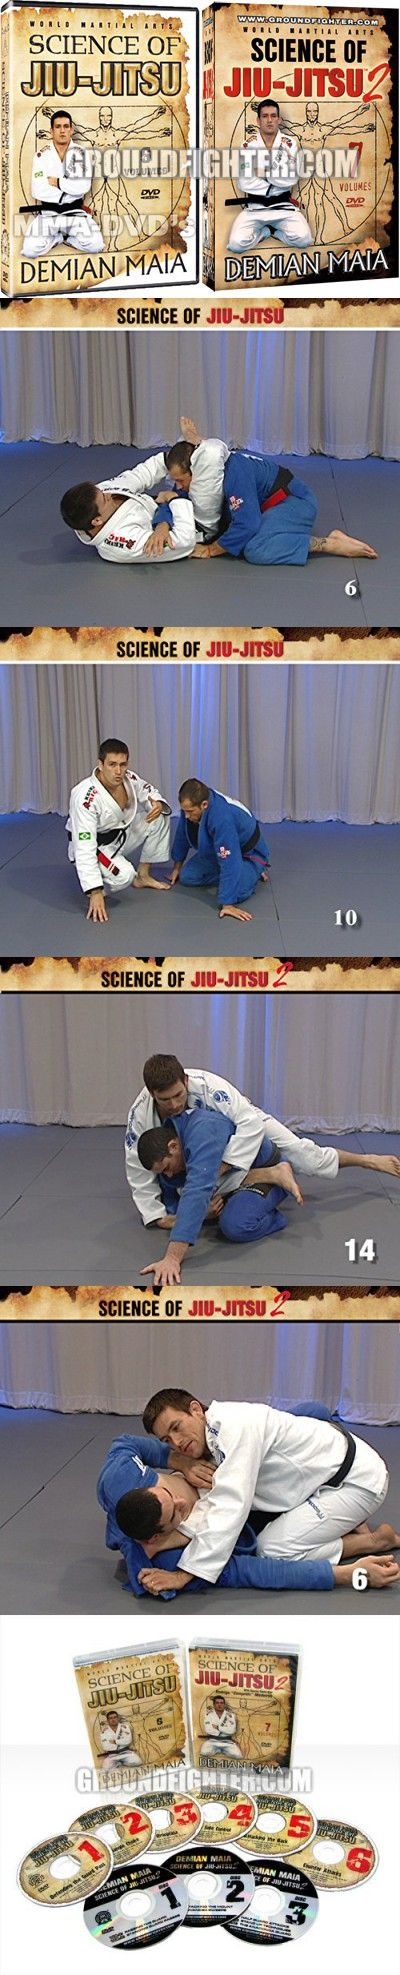 Demian Maia - Science of Jiu-Jitsu 1 & 2 Combo